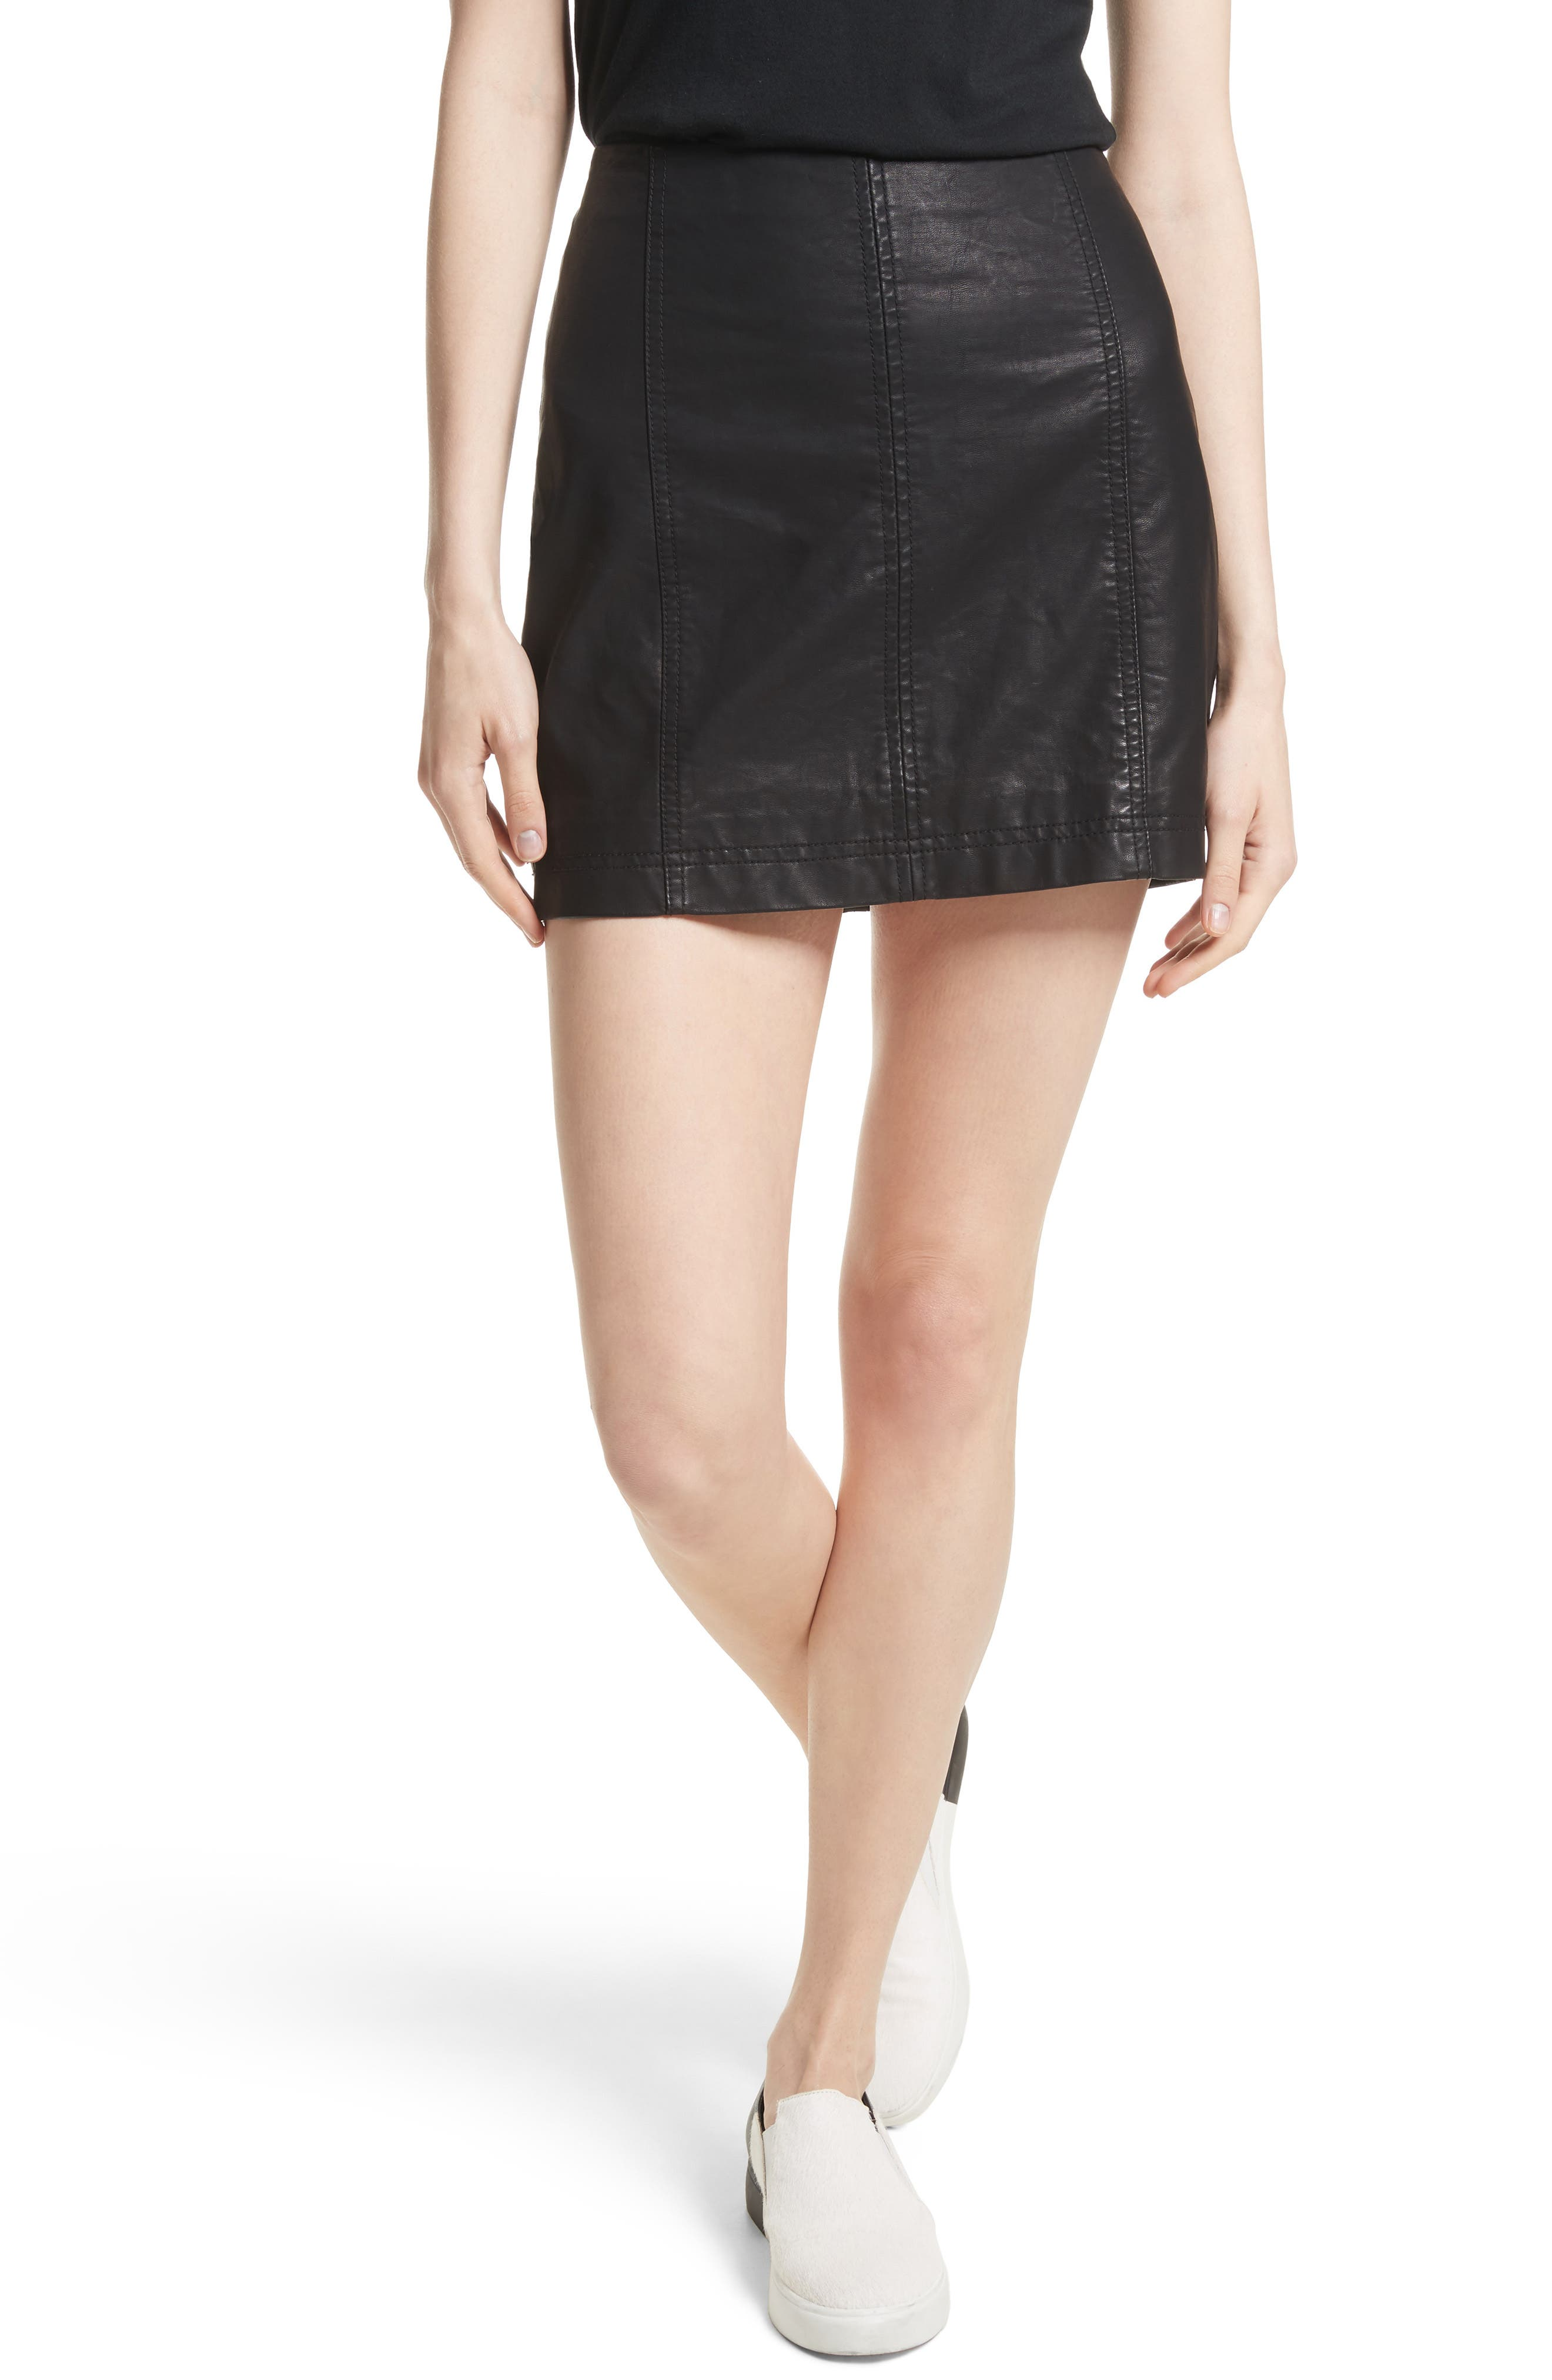 Alternate Image 1 Selected - Free People Modern Femme Faux Leather Miniskirt